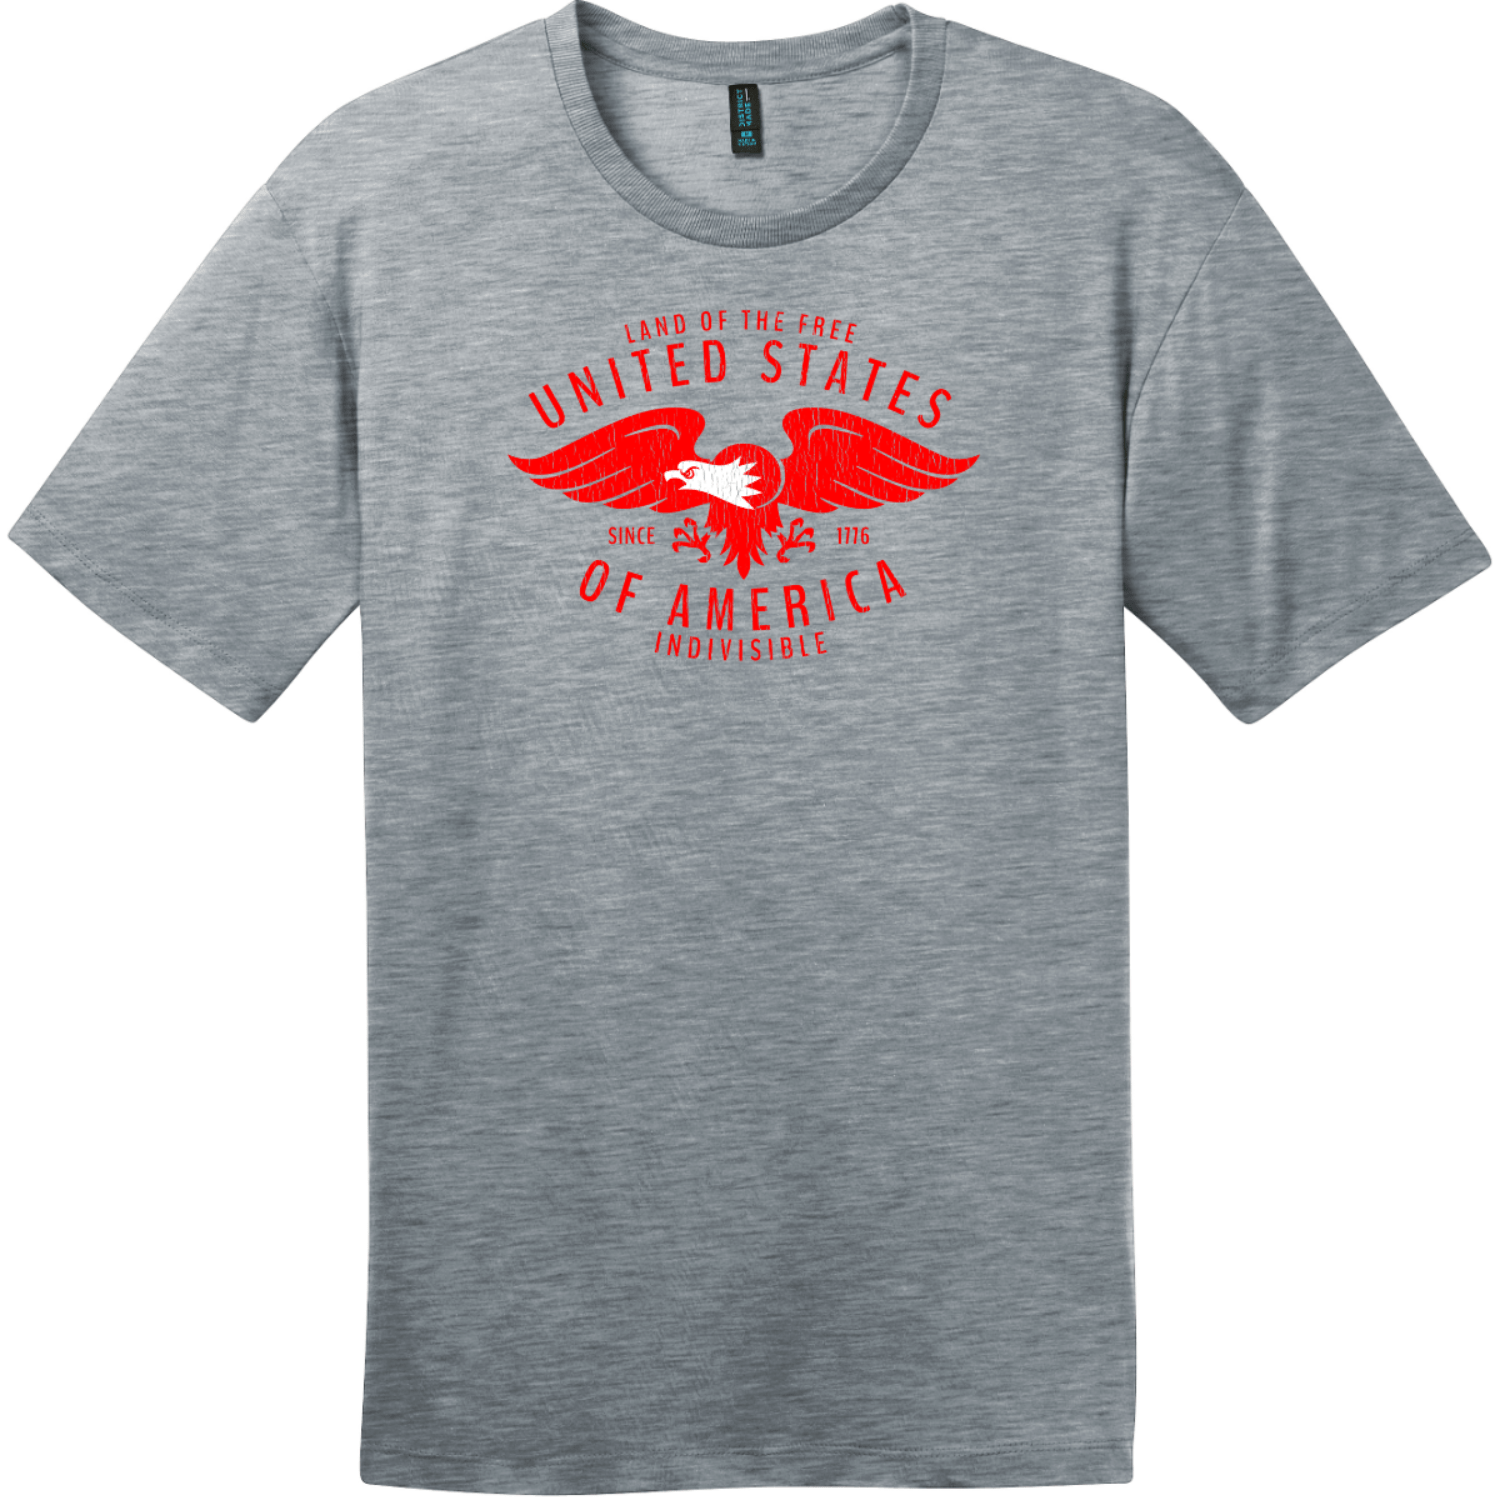 USA Eagle Land Of The Free Vintage T-Shirt Heathered Steel District Perfect Weight Tee DT104